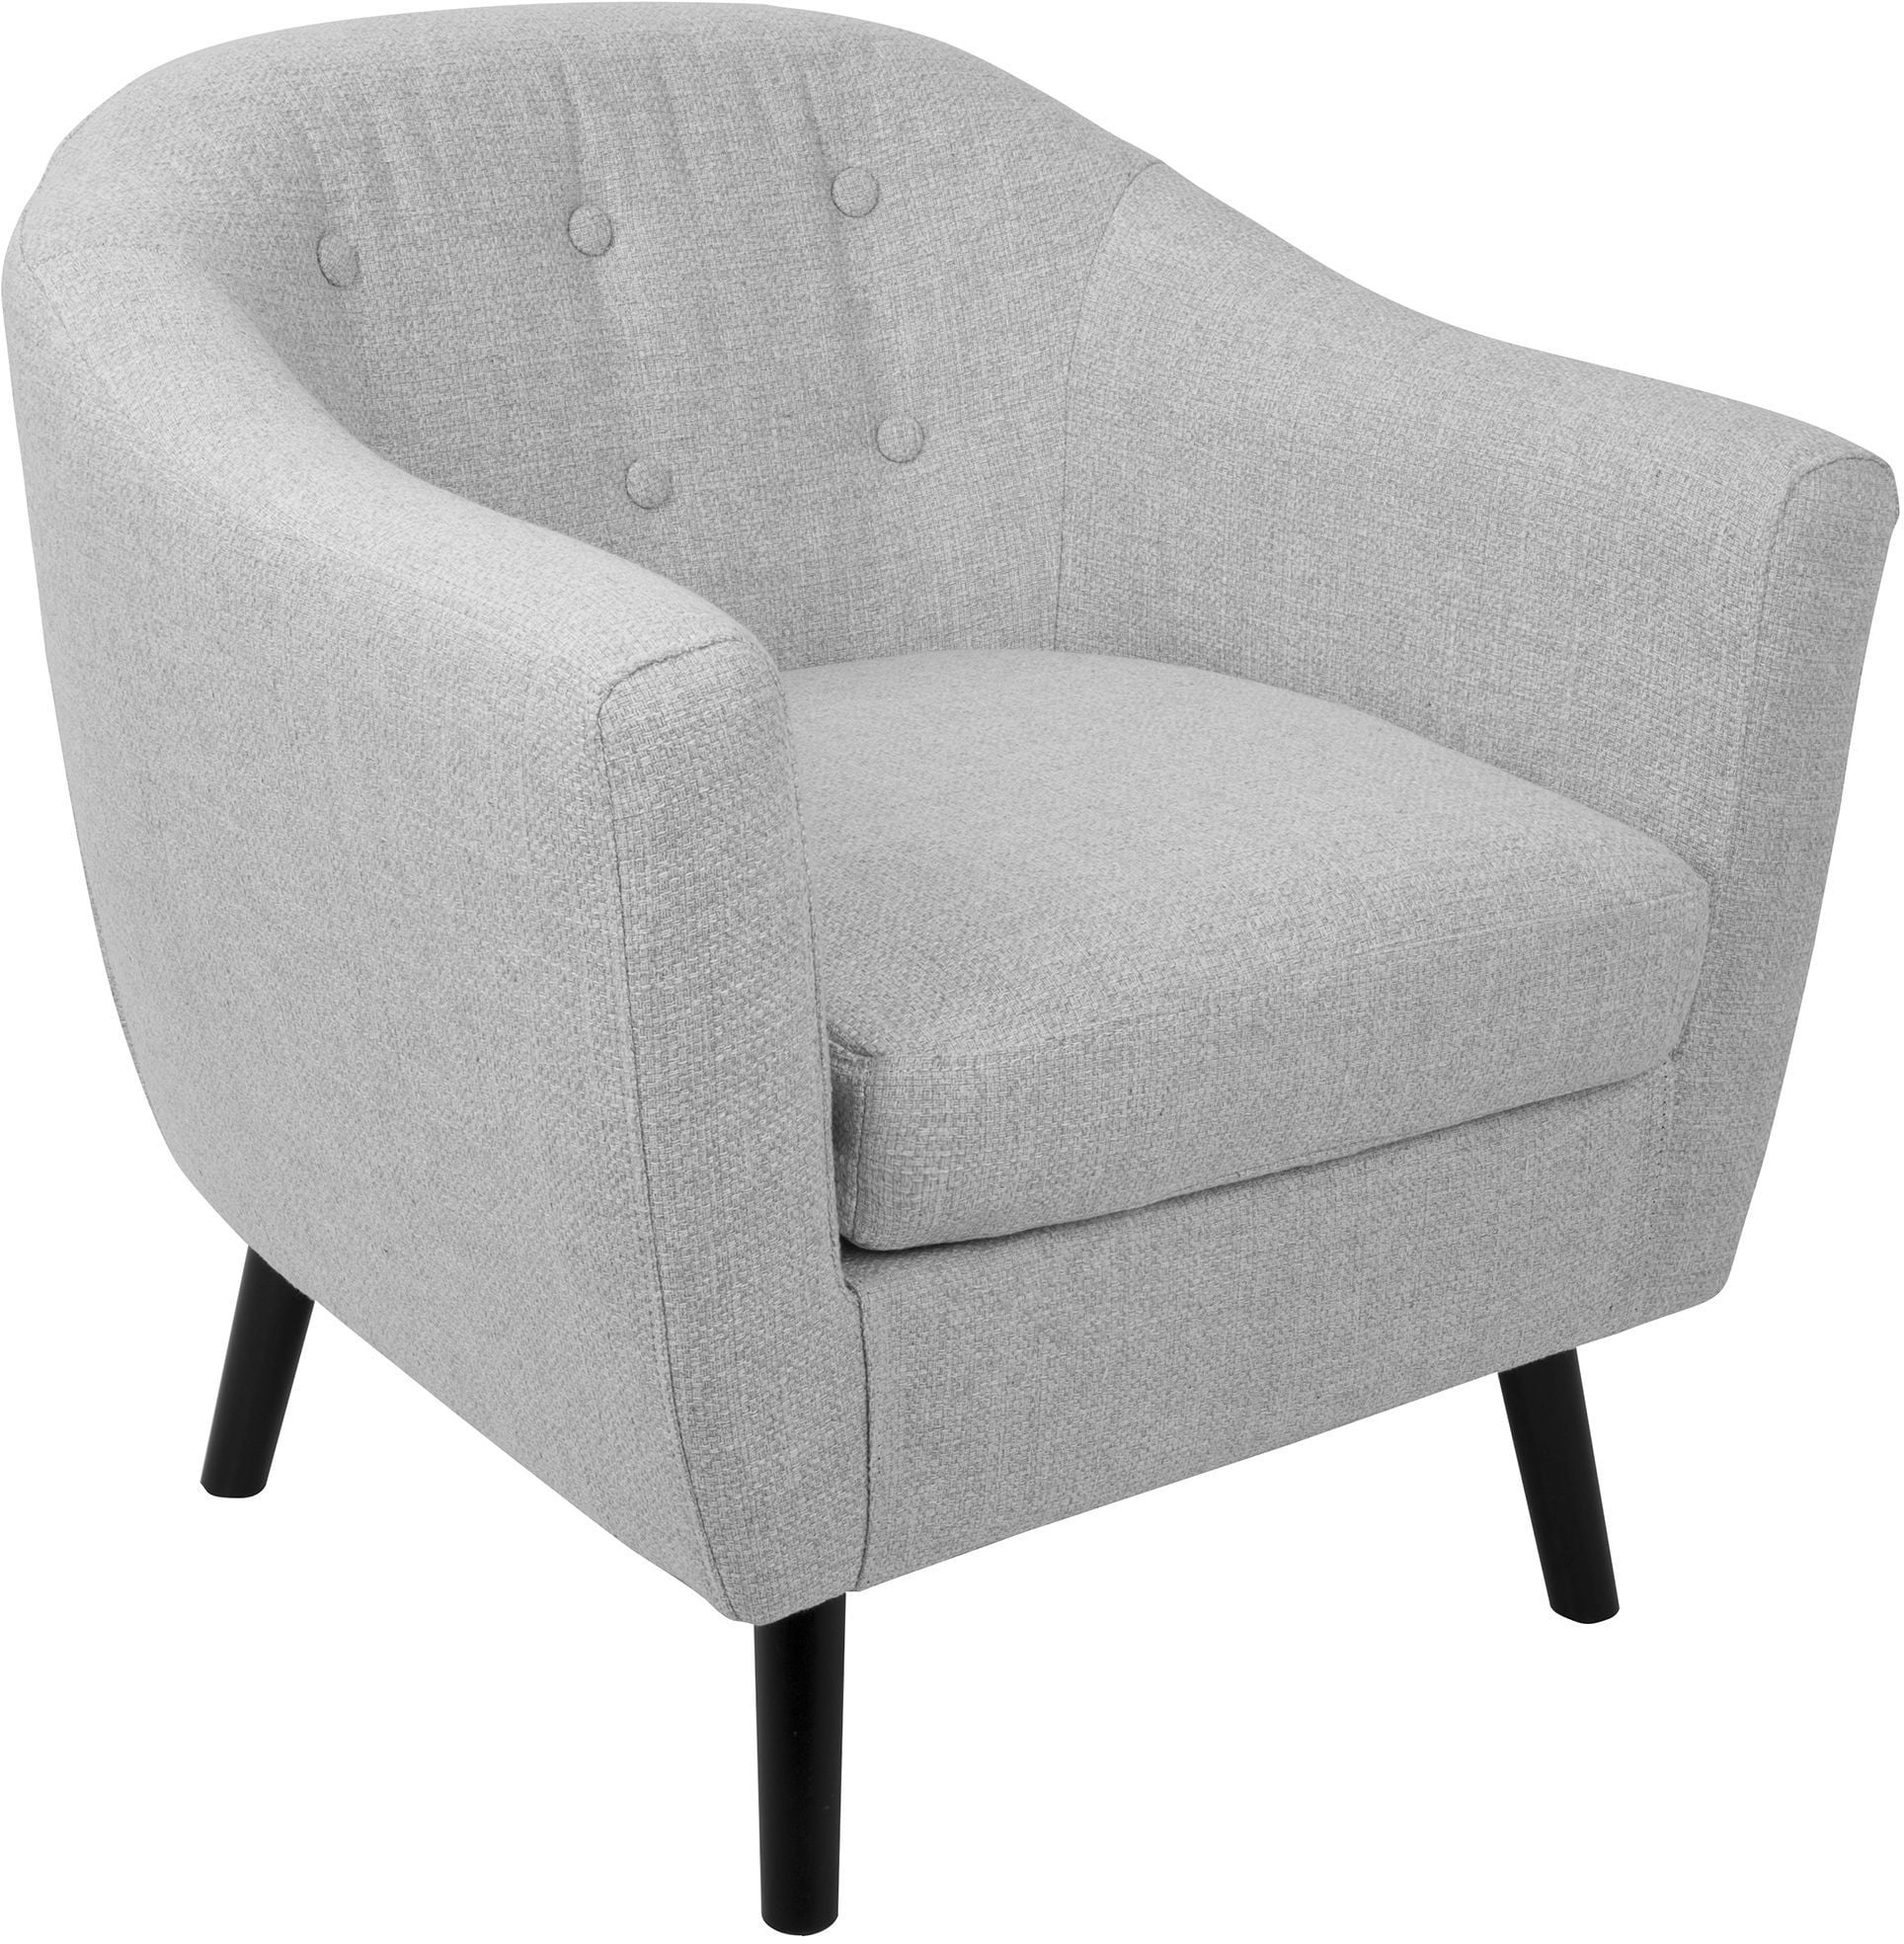 Light Gray Accent Chairs Rockwell Light Gray Accent Chair From Lumisource Coleman